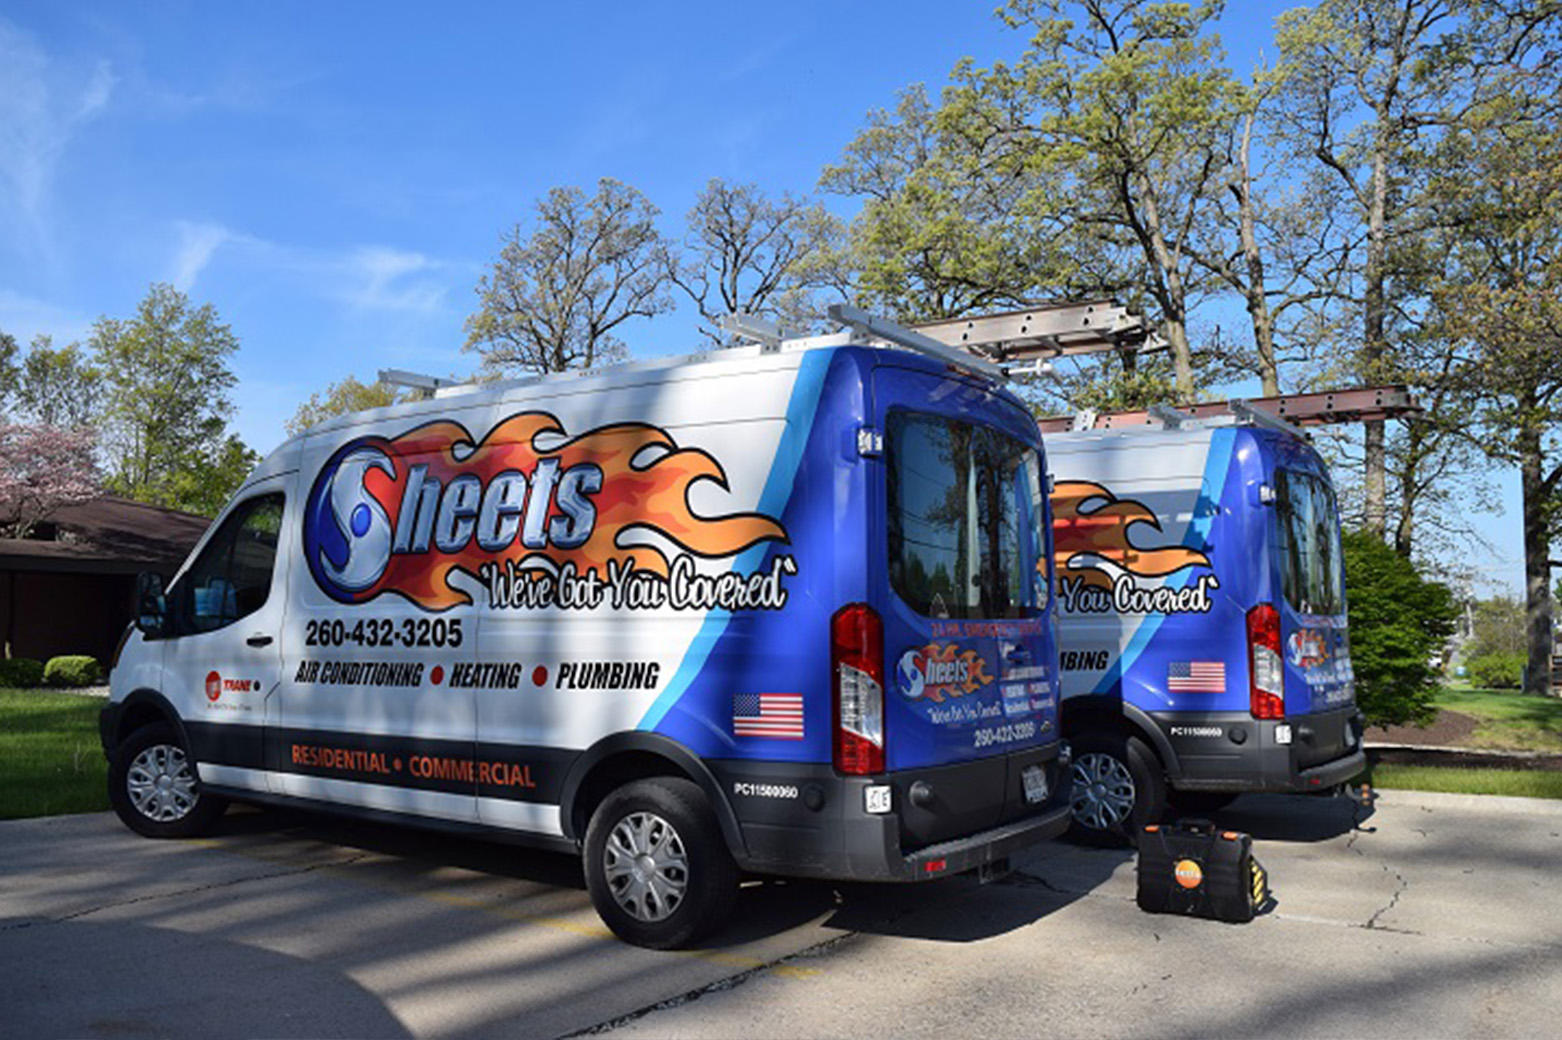 Sheets Air Conditioning, Heating & Plumbing, Inc. image 1